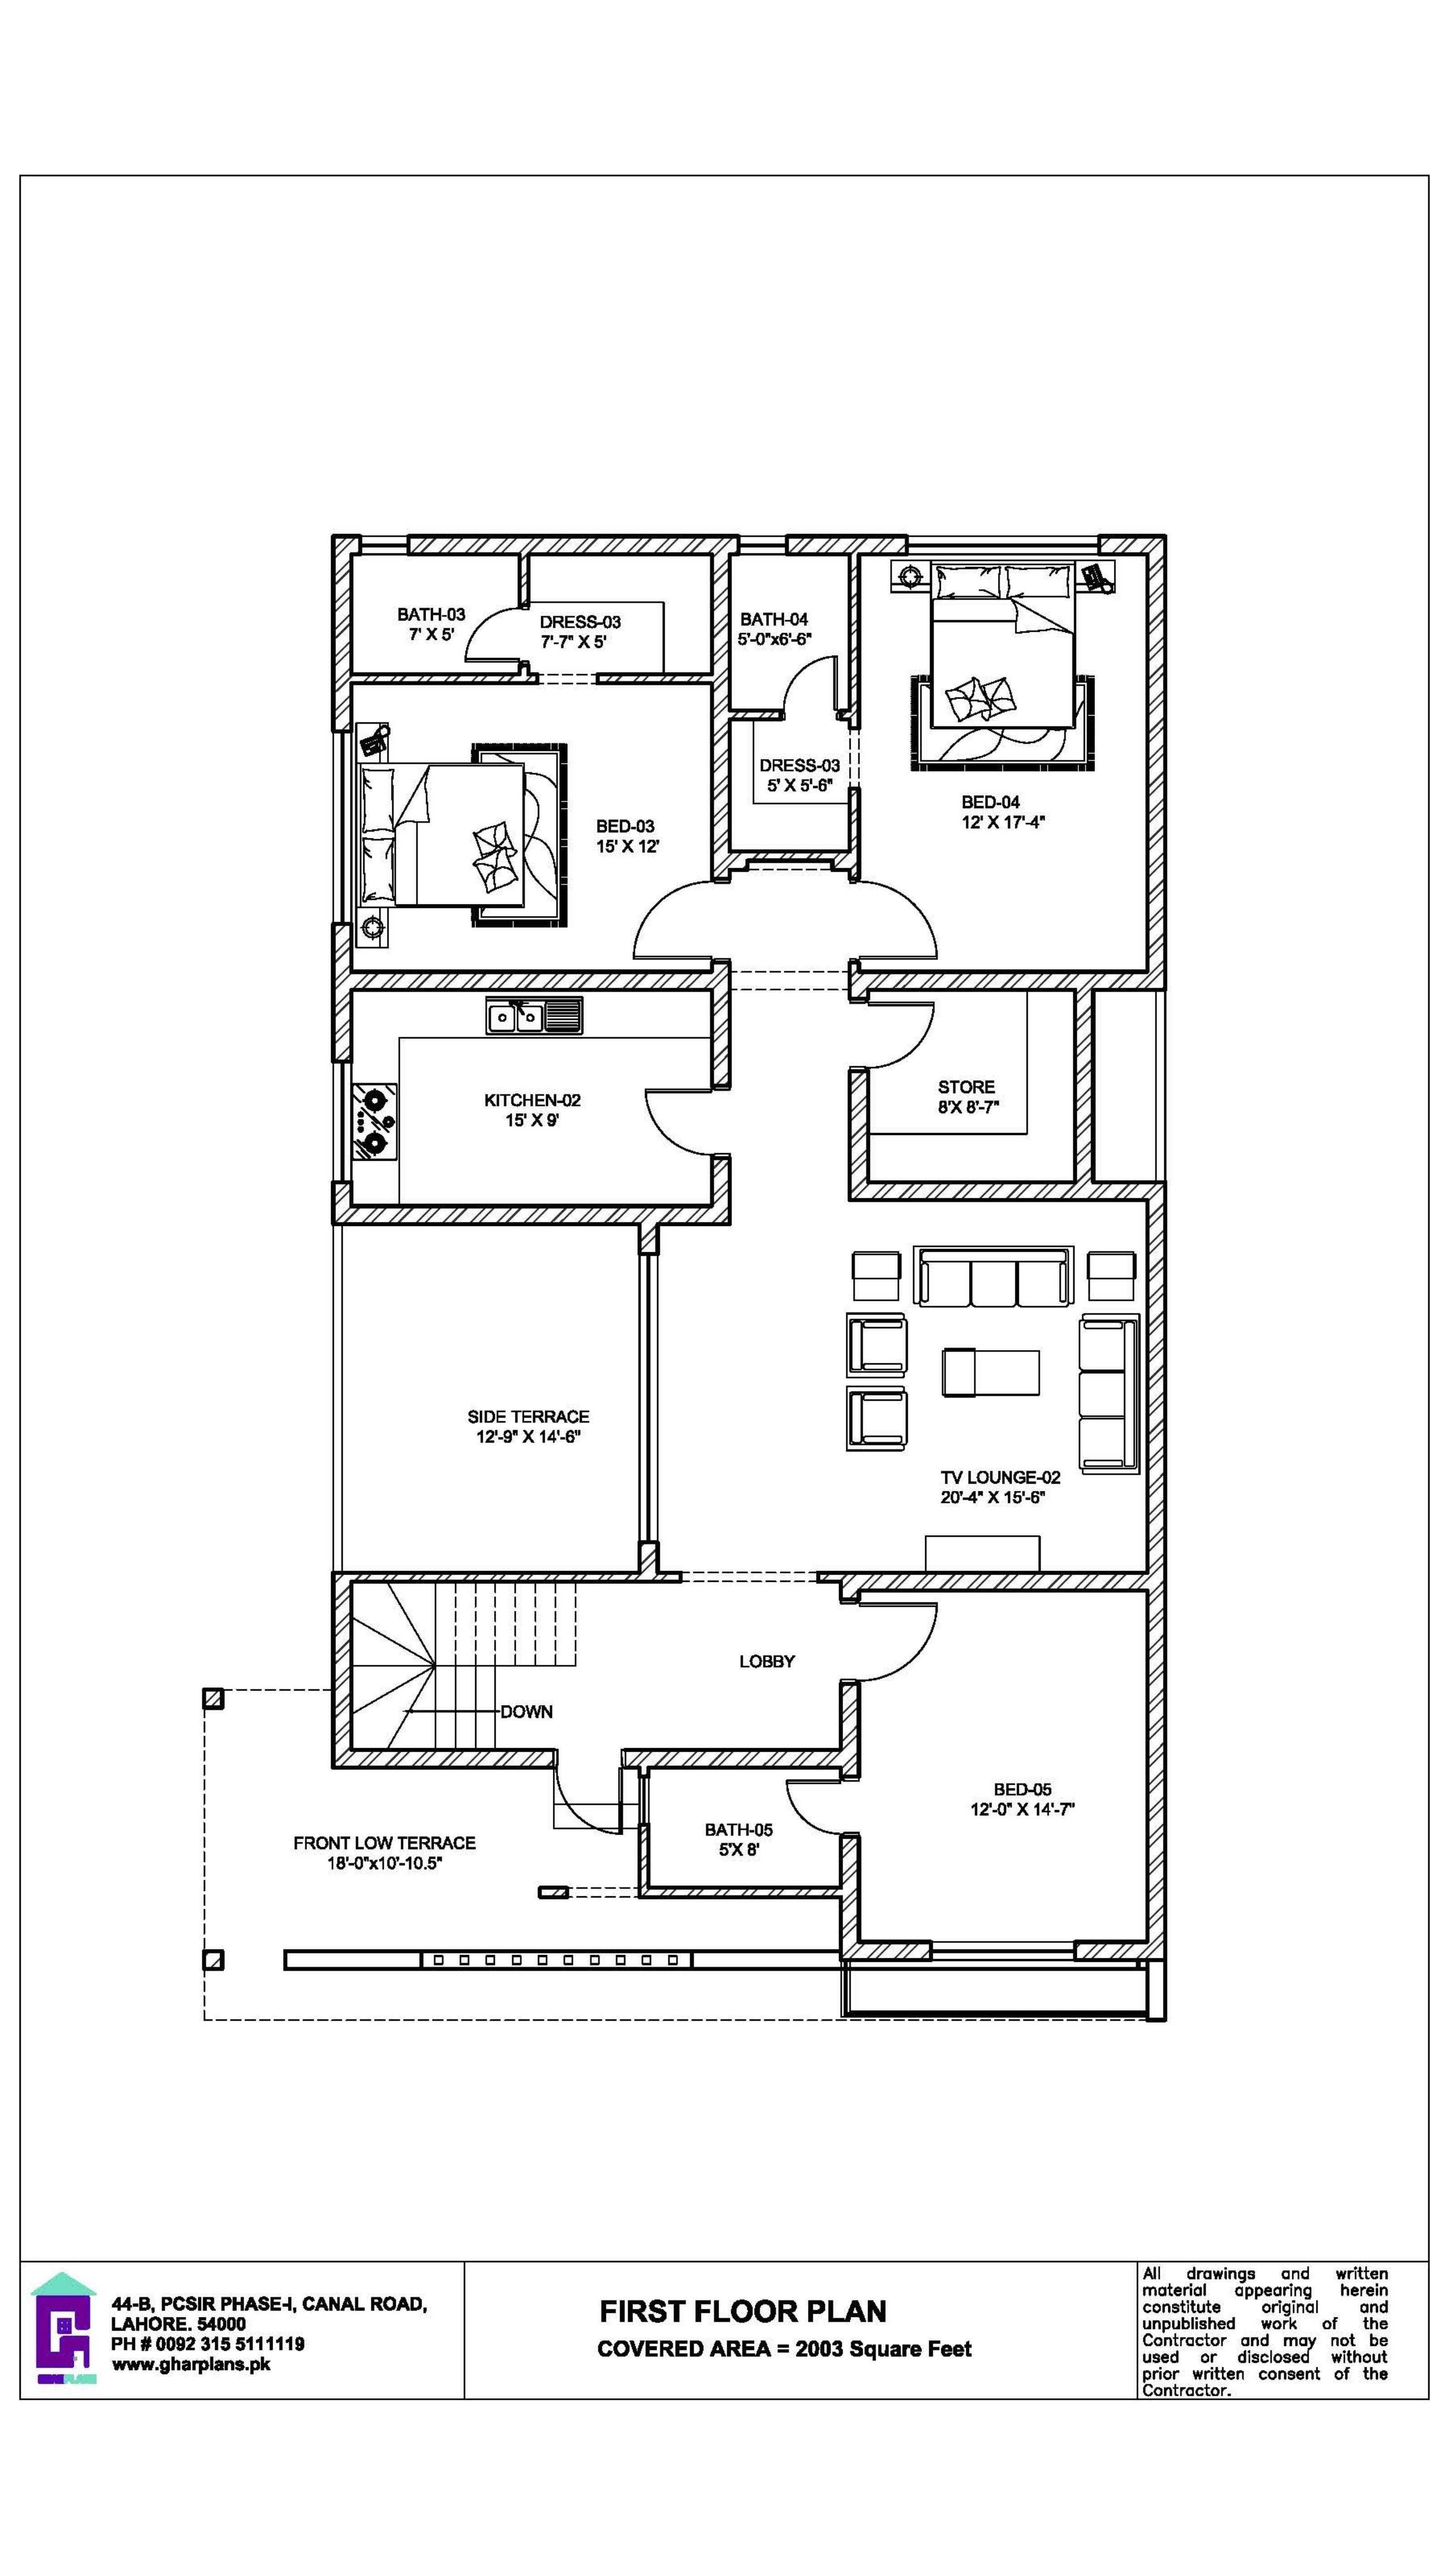 32x65 House Plan With Elevation South Facing 2 Story G 1 Visual Maker Youtube South Facing House House Plans House Elevation